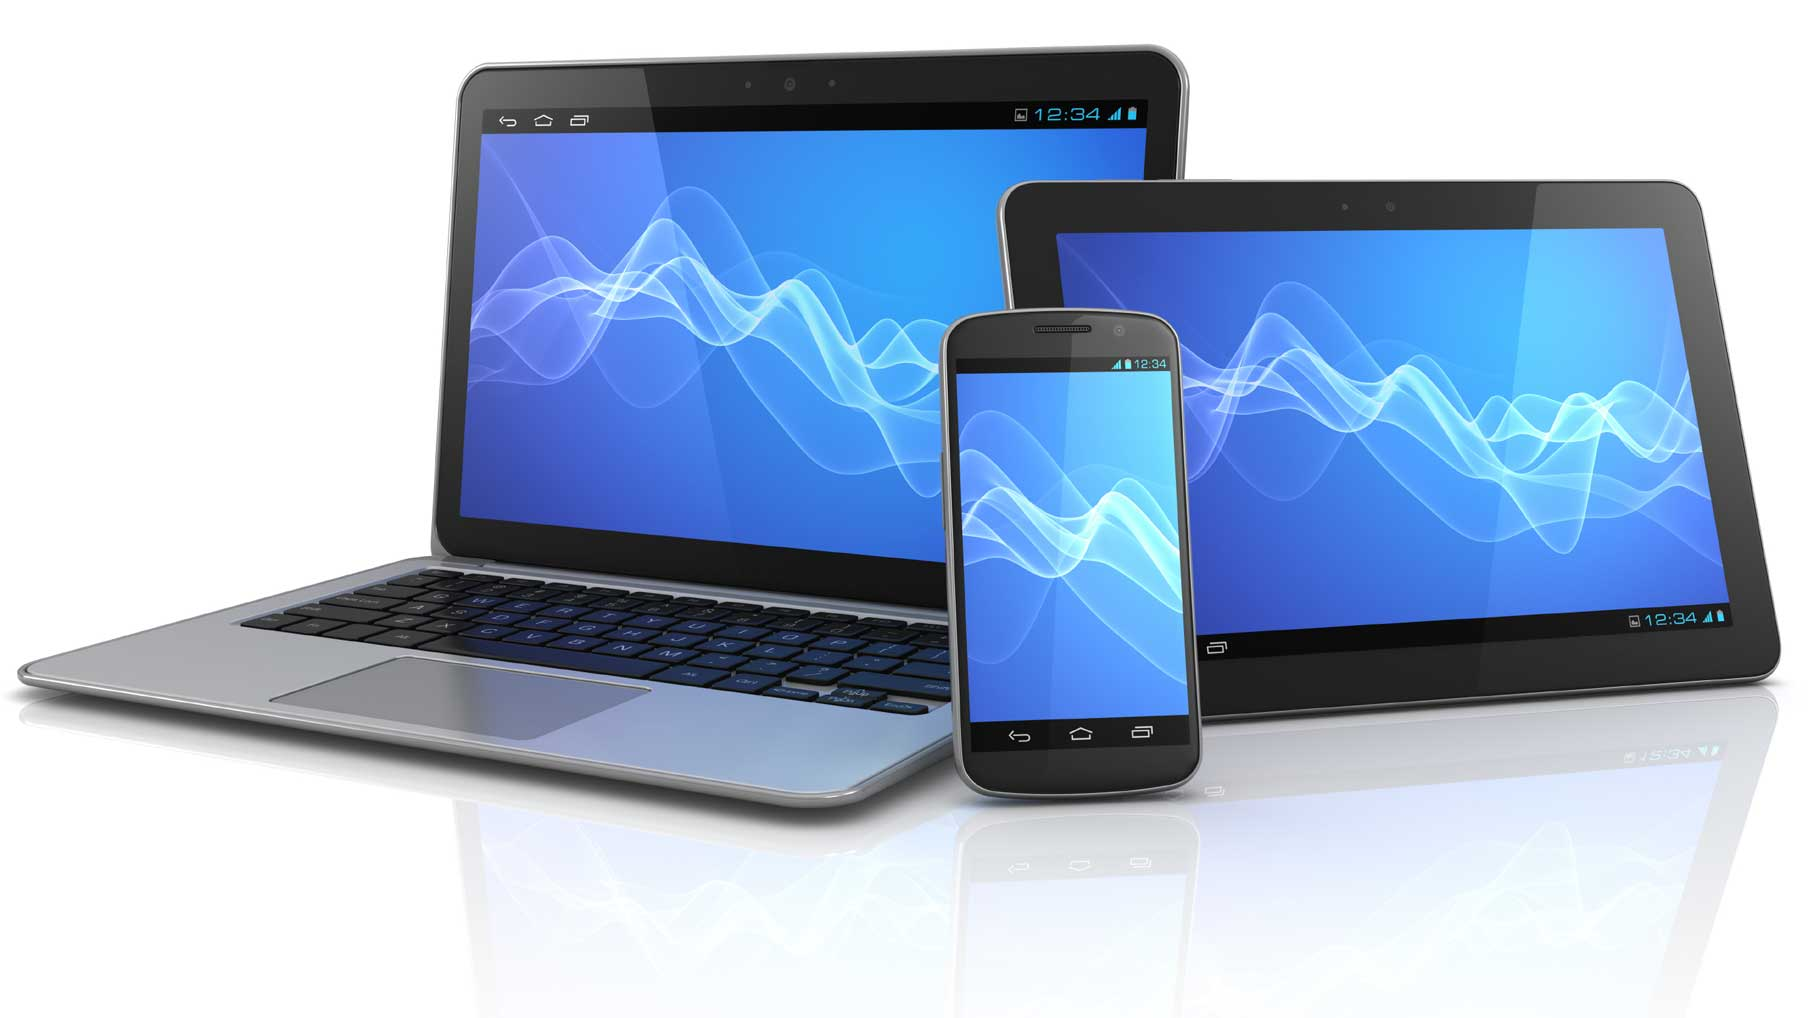 From PCs to Tablets to Phablets: Everything Has Its Ups and Downs - Image 2